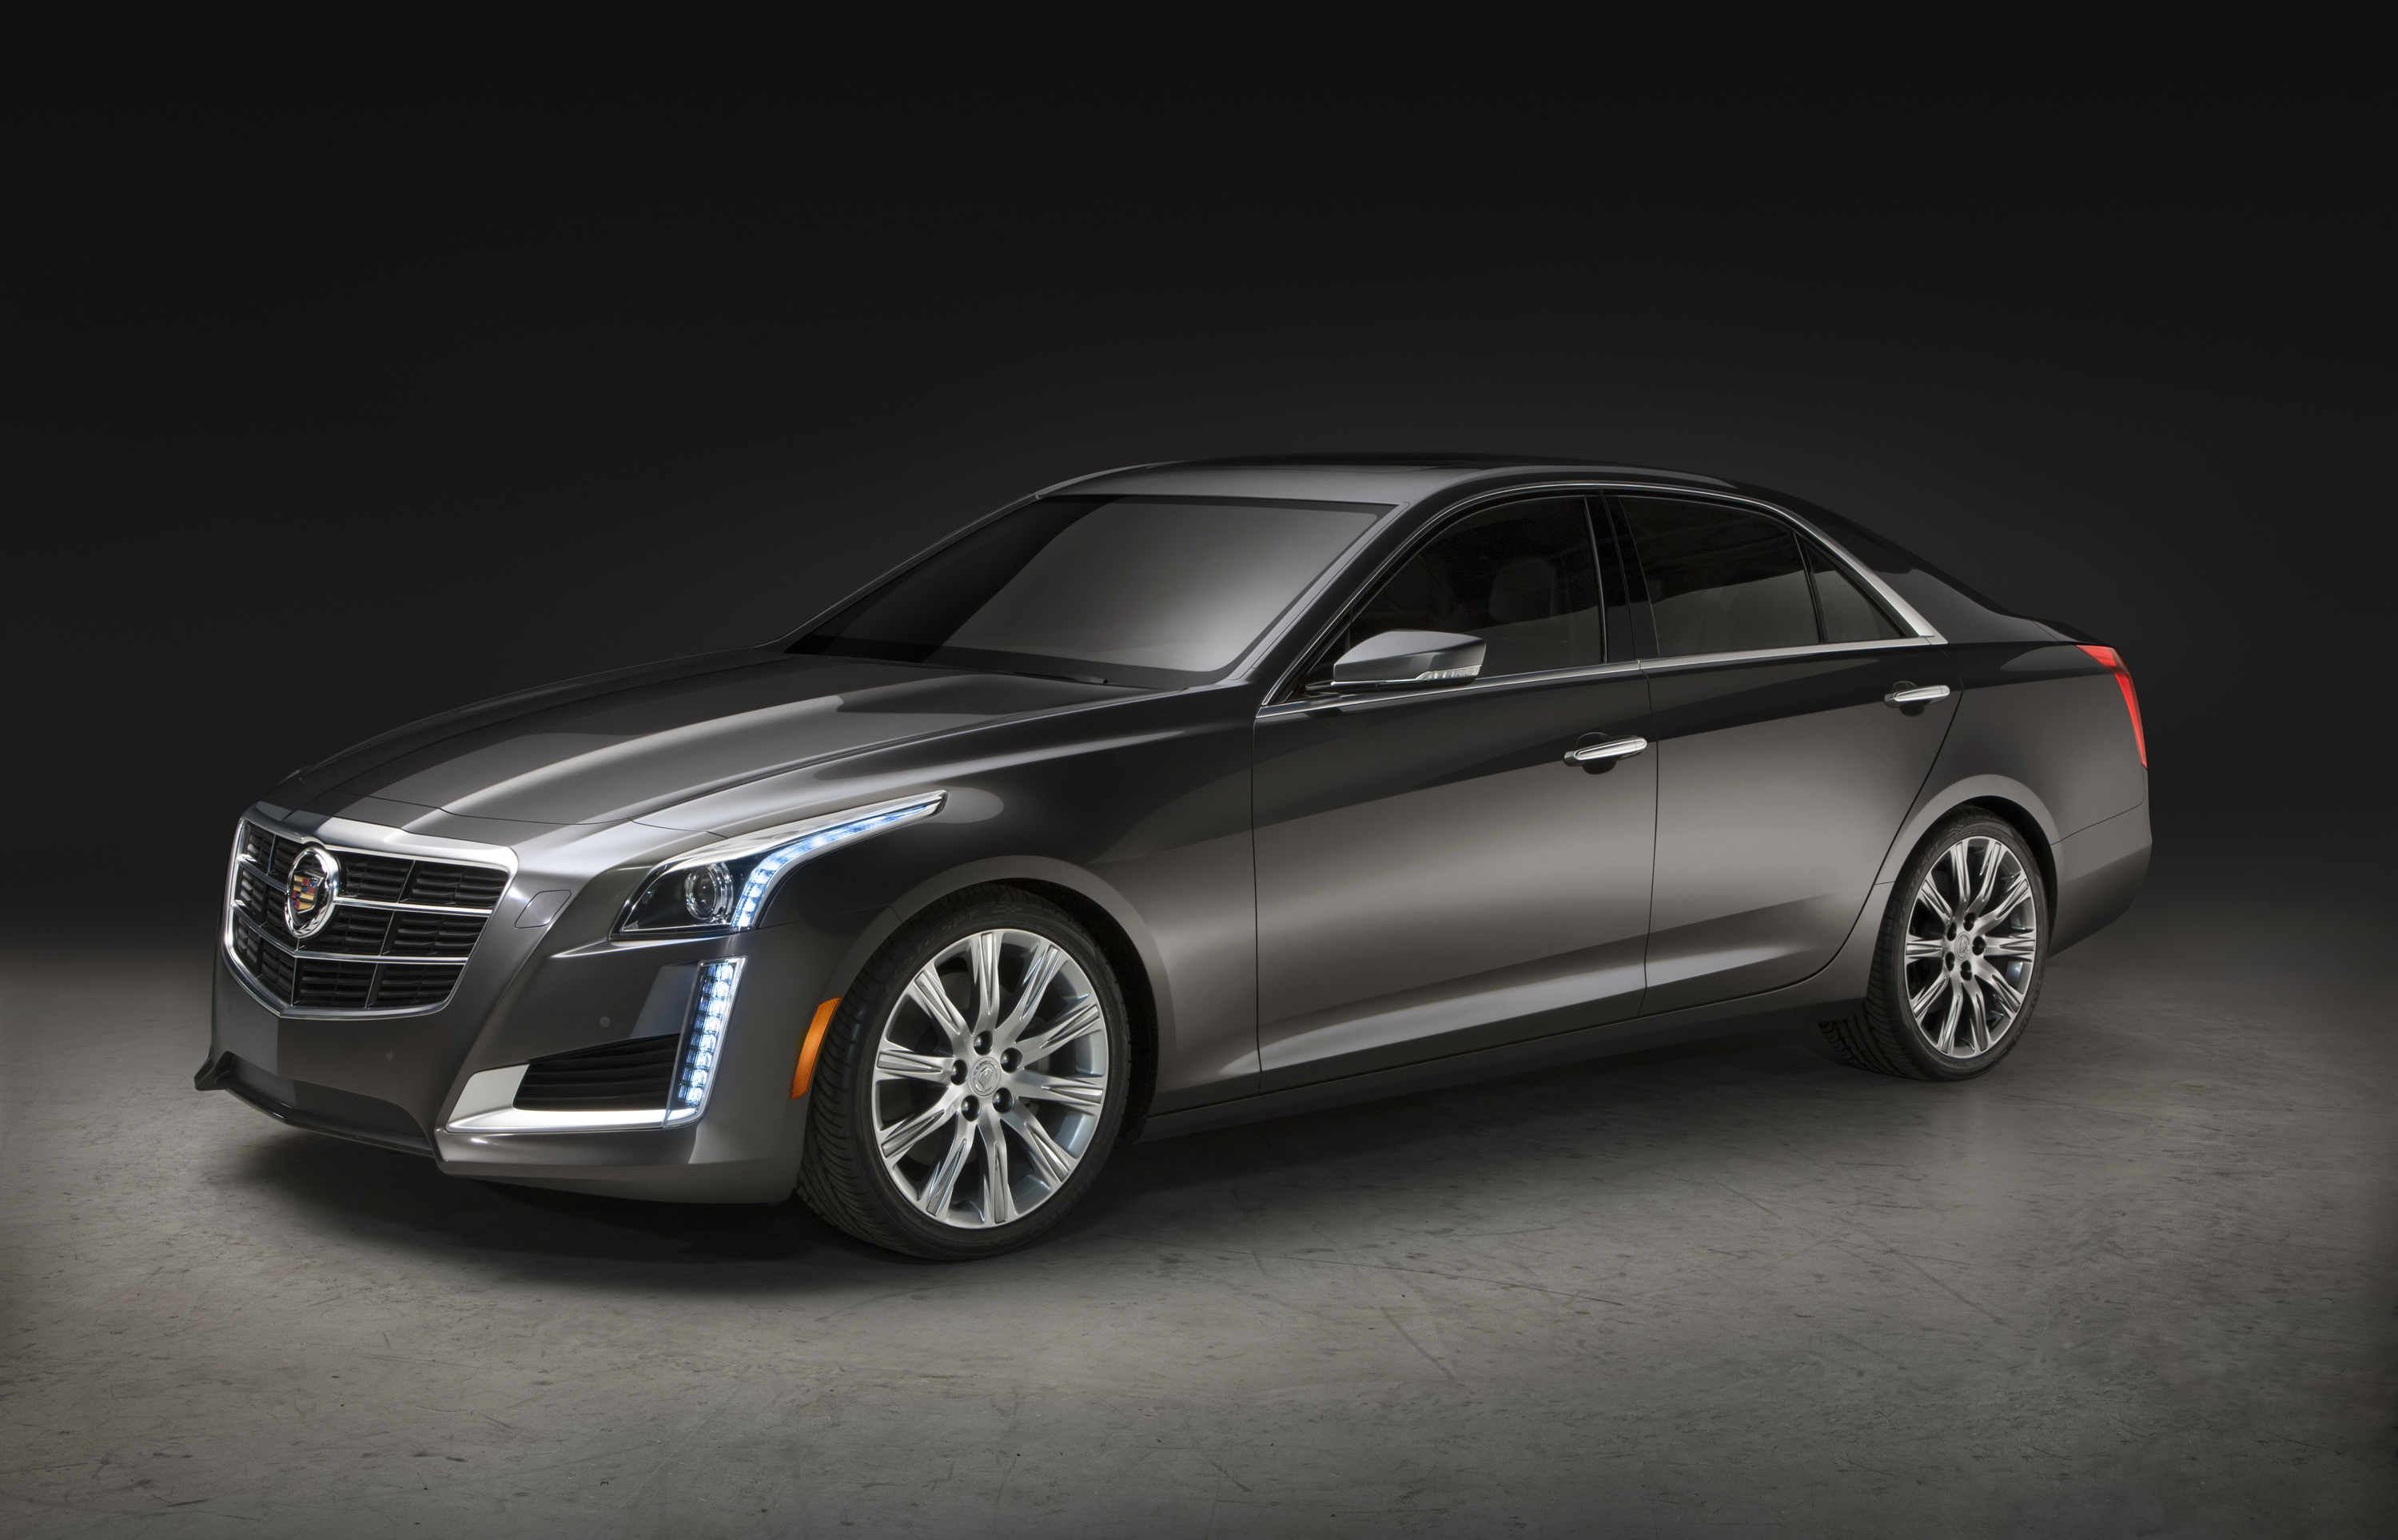 2014 cadillac cts preliminary specifications